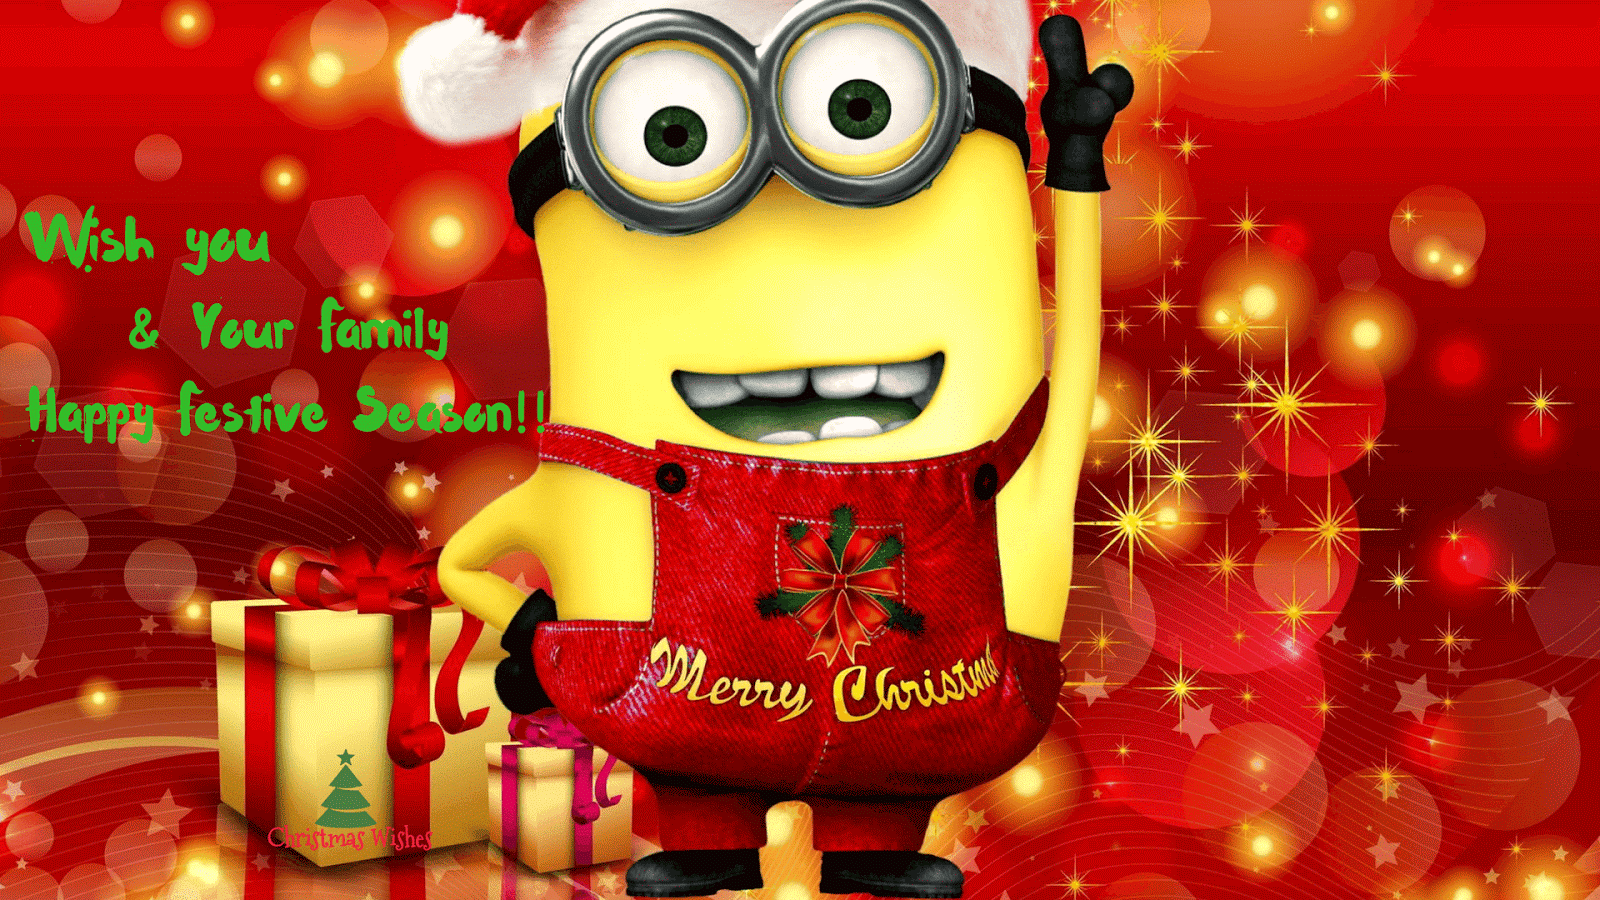 Frohe Weihnachten Minions.10 Amazing Minions Merry Christmas Wallpapers Will Blow Your Mind